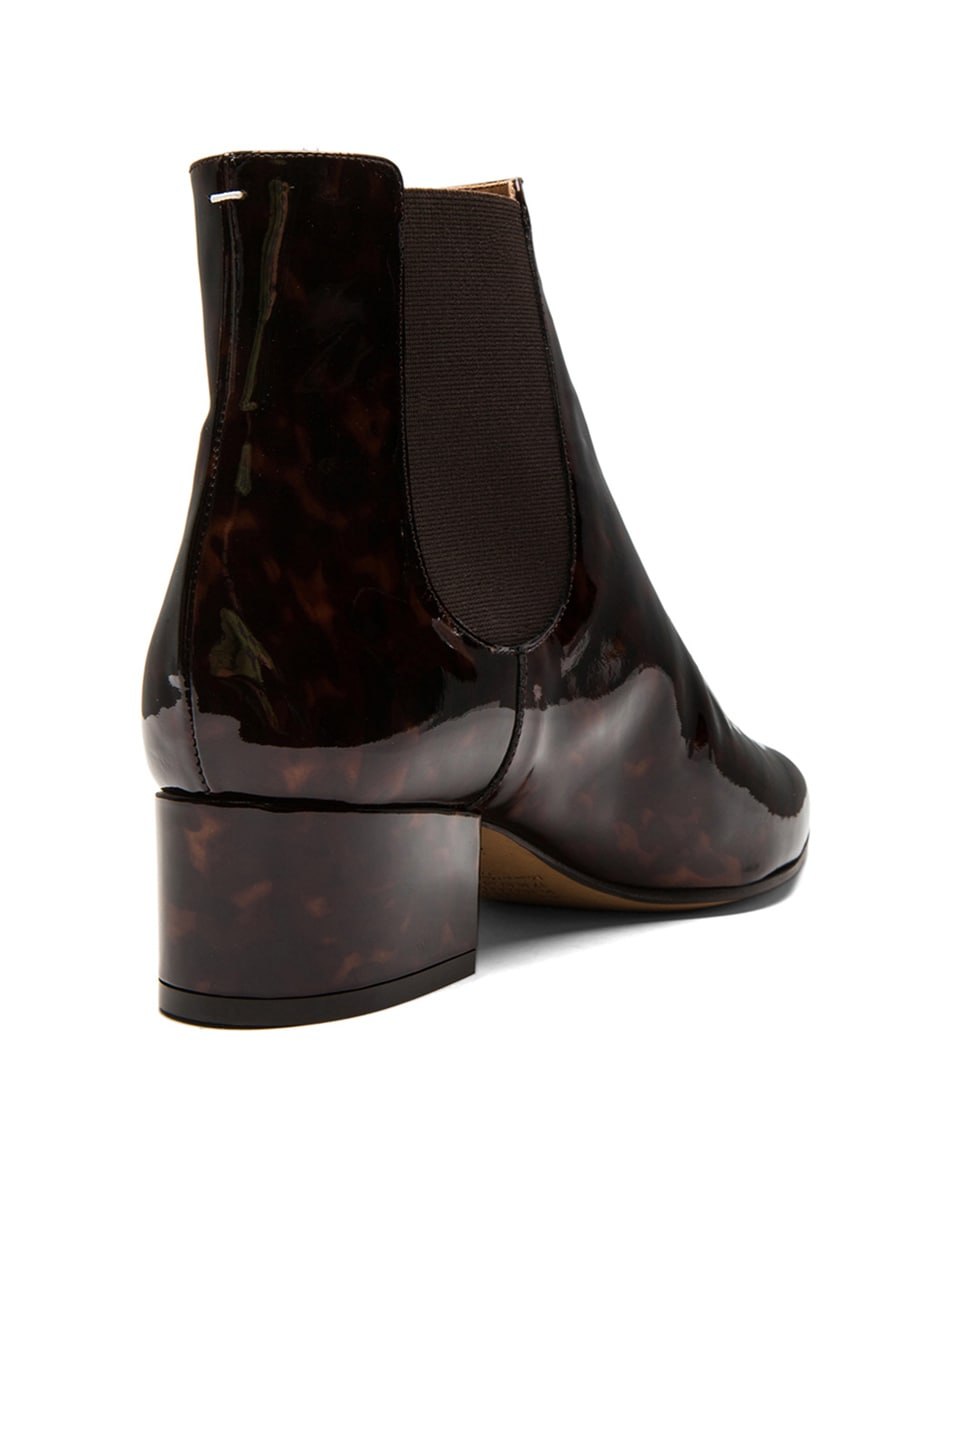 Image 3 of Maison Margiela Printed Patent Leather Chelsea Boots in Turtle